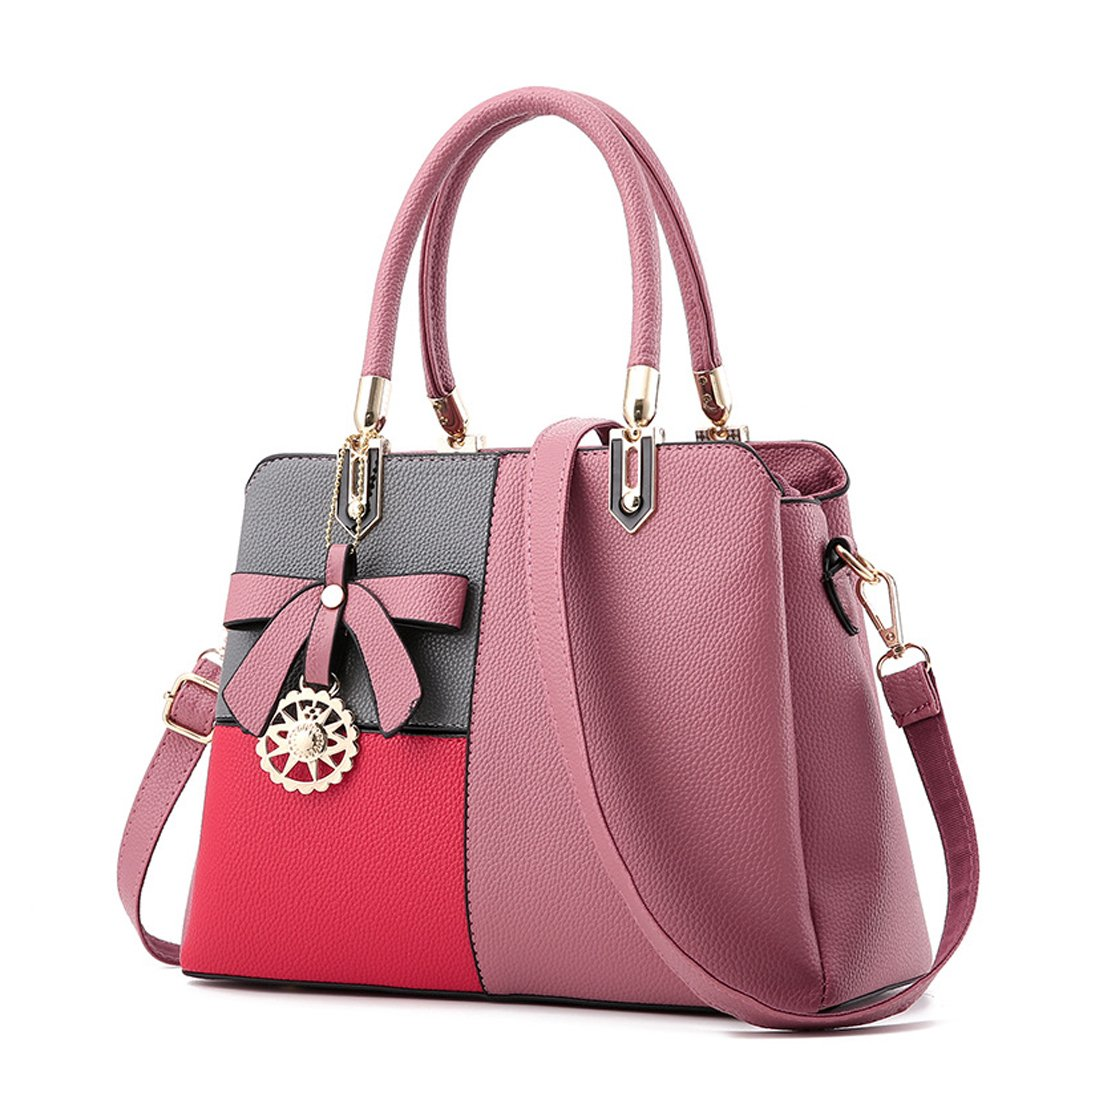 Pink Handbags for Women Designer Tote Purses Leather Top hangdle Bags Shoulder Cross Body Bag